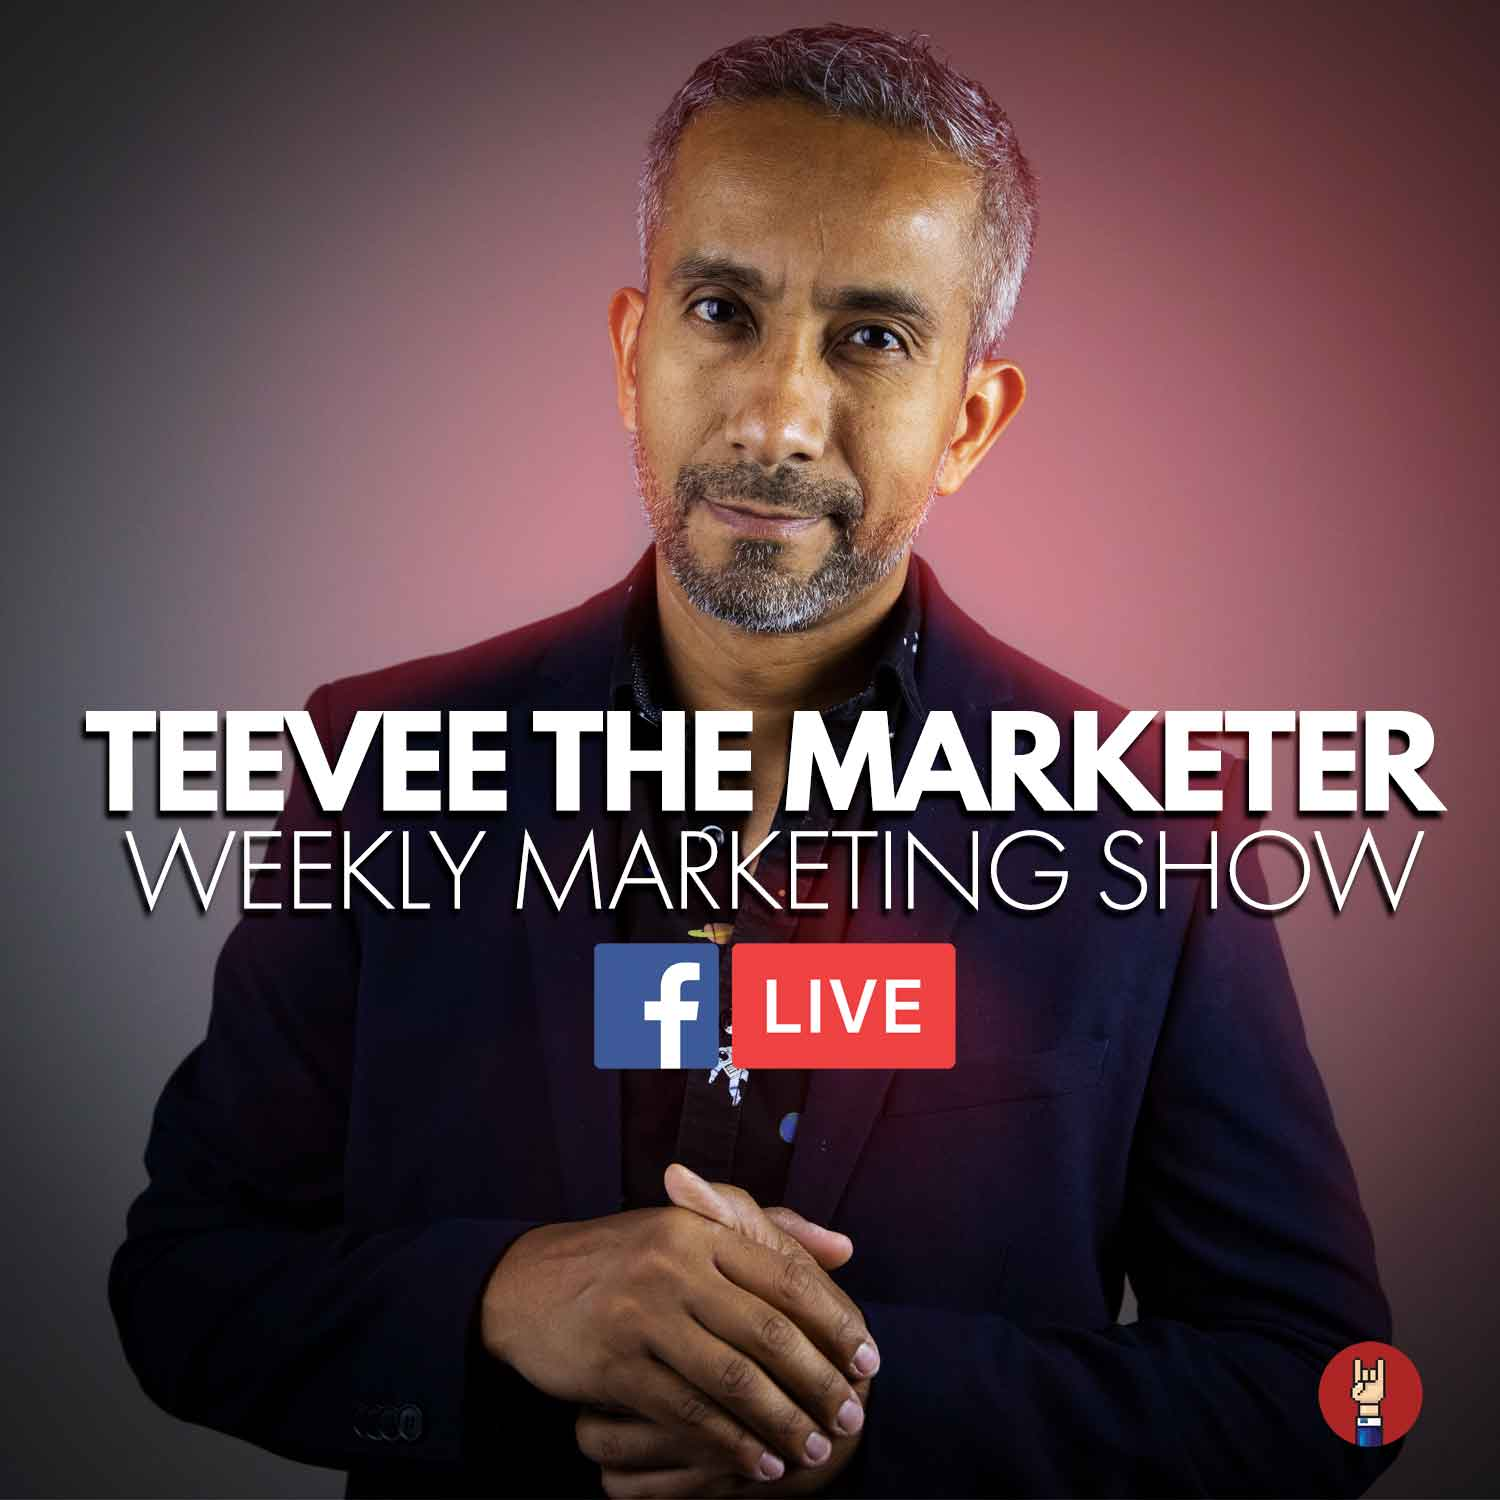 Teevee the Marketer: Weekly Marketing Show EP 1 | December 3, 2019